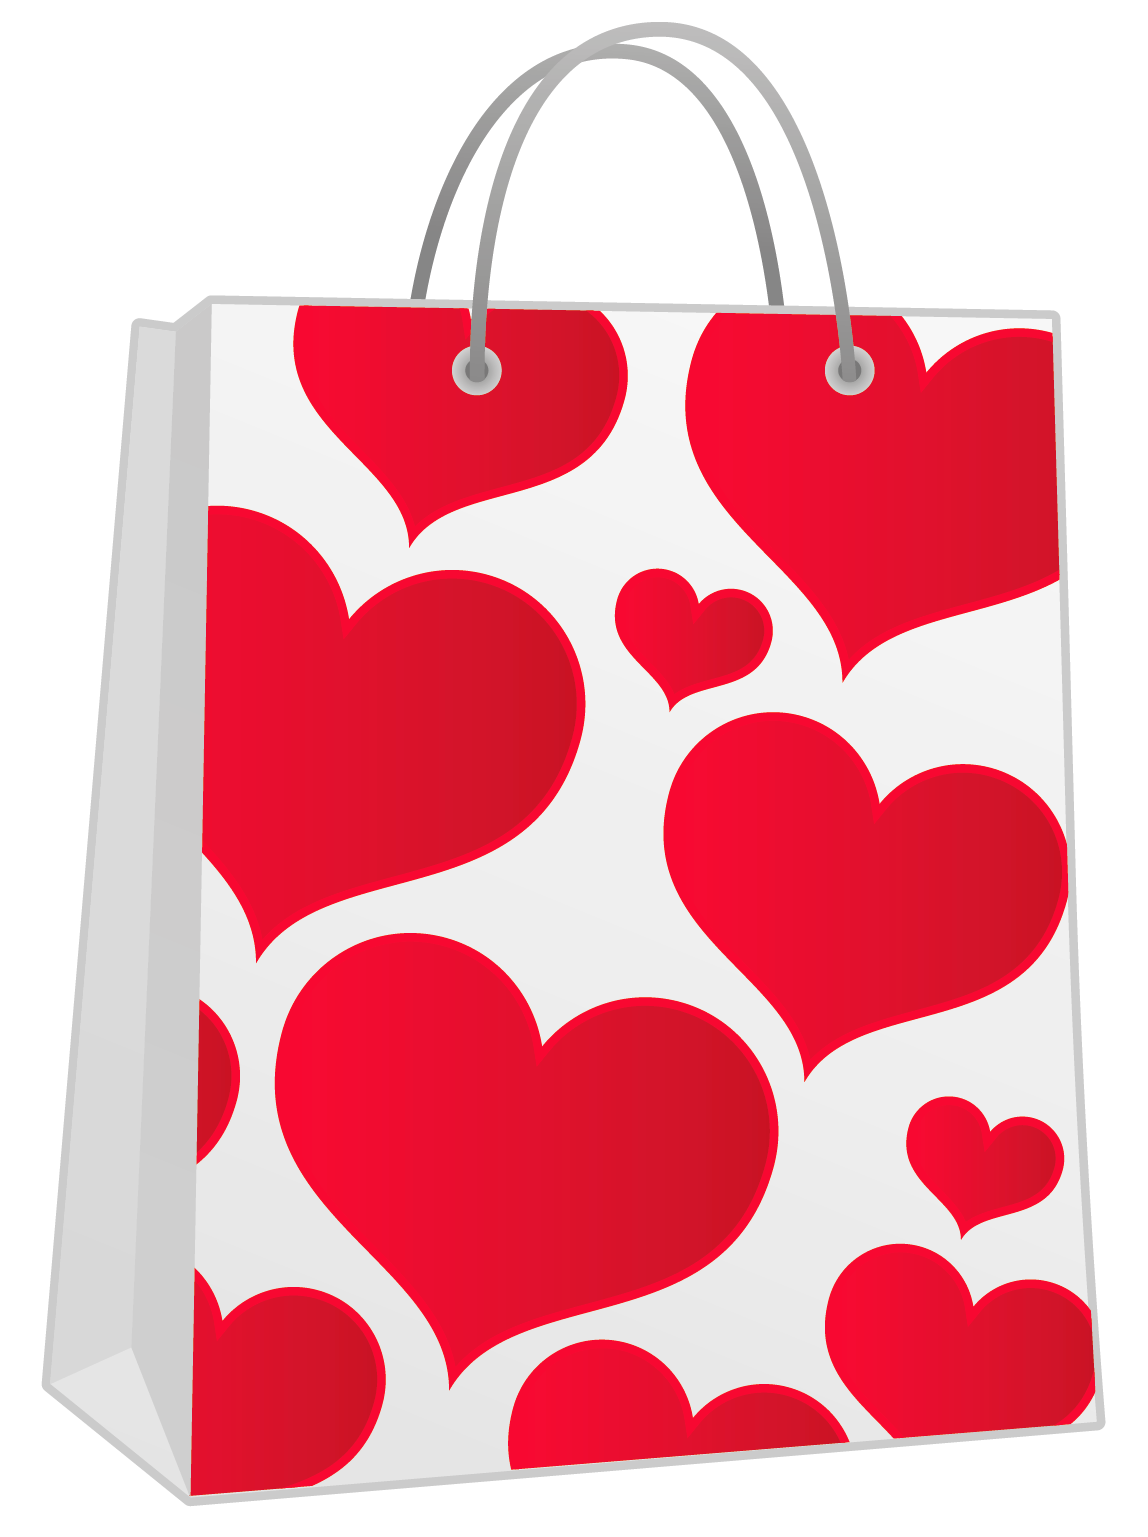 Valentine gift bag with. Luggage clipart red